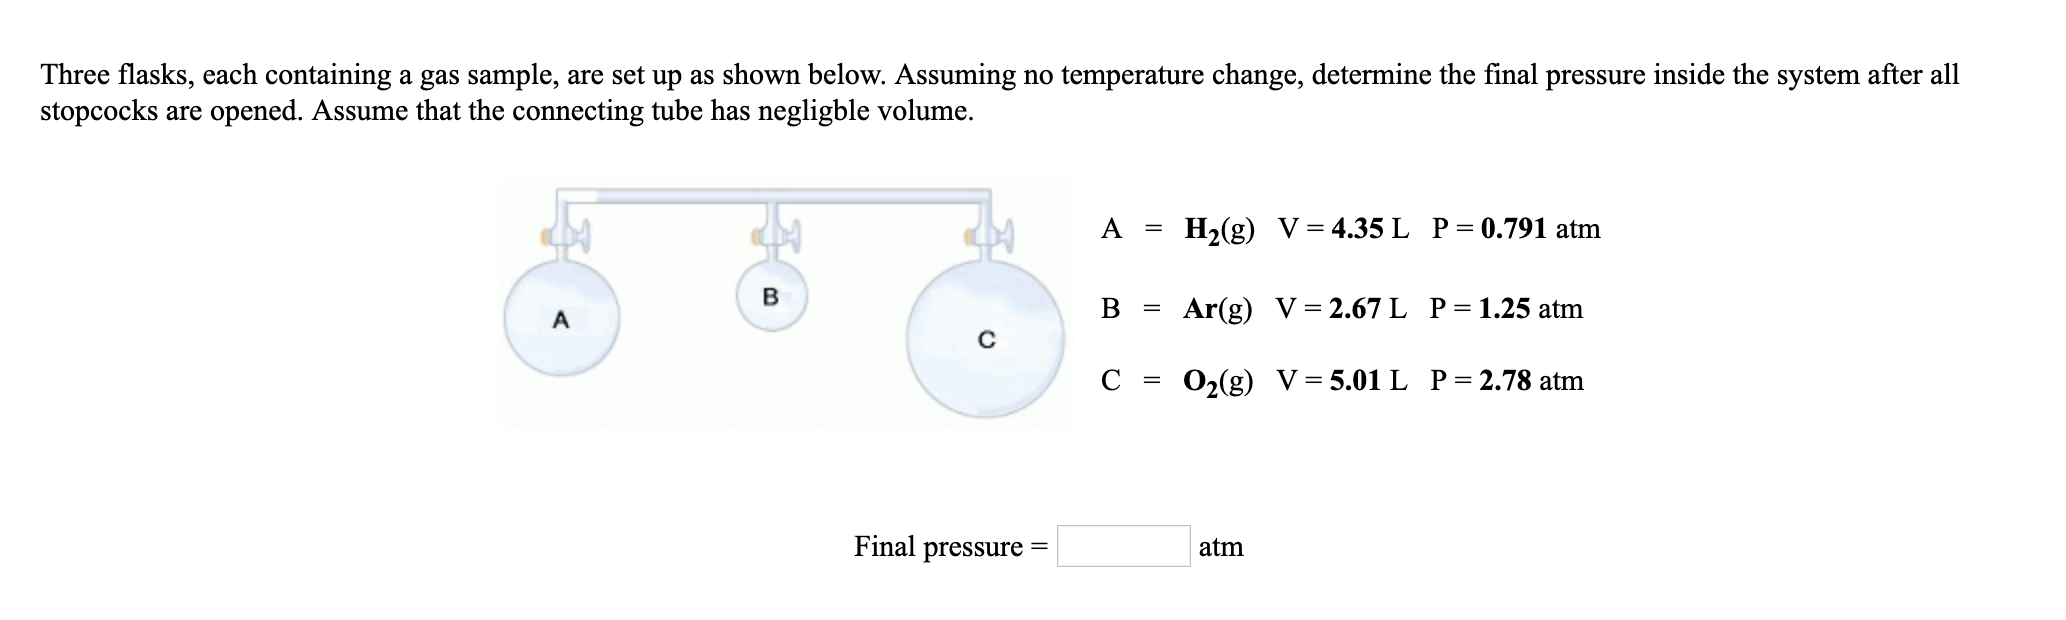 Three flasks, each containing a gas sample, are set up as shown below. Assuming no temperature change, determine the final pressure inside the system after all stopcocks are opened. Assume that the connecting tube has negligble volume. A-H2(g) V-4.35L P-0.791 atm B = Ar(g) V = 2.67 L P= 1.25 atm C = O2(g) V= 5.01 L P= 2.78 atm Final pressure- atm